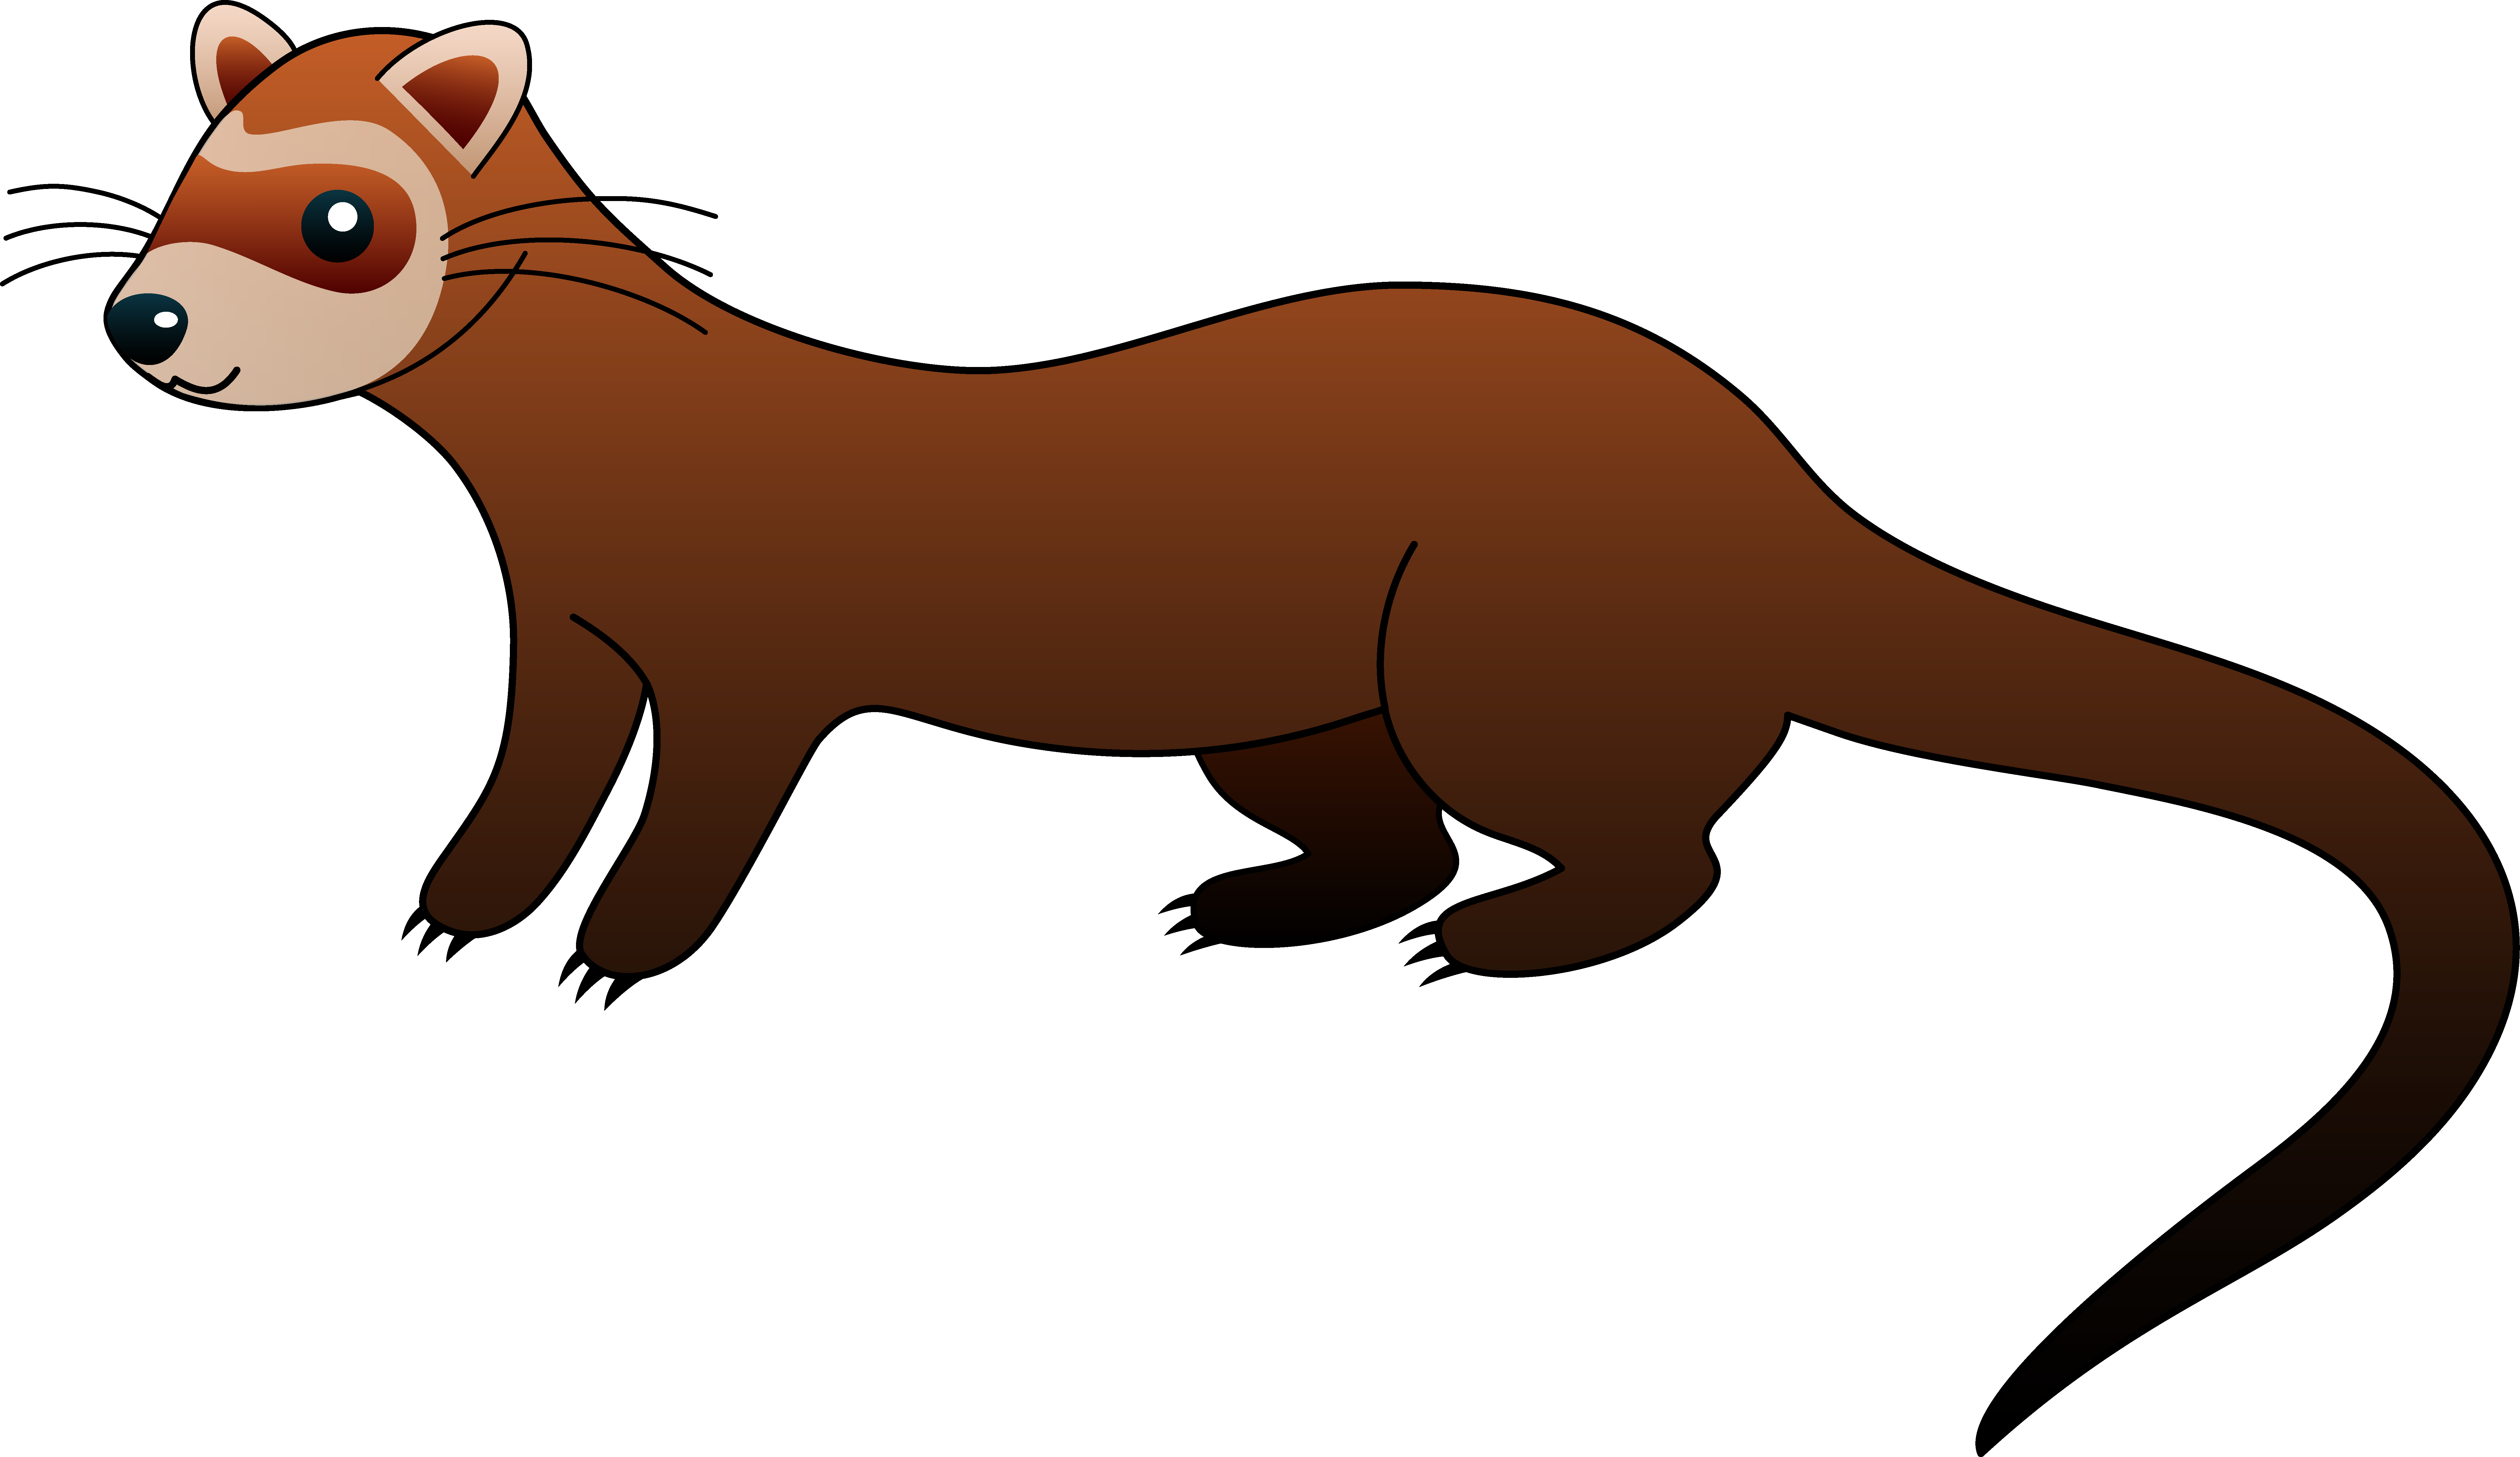 Weasel cartoon clipart jpg freeuse Weasel PNG HD Transparent Weasel HD.PNG Images. | PlusPNG jpg freeuse